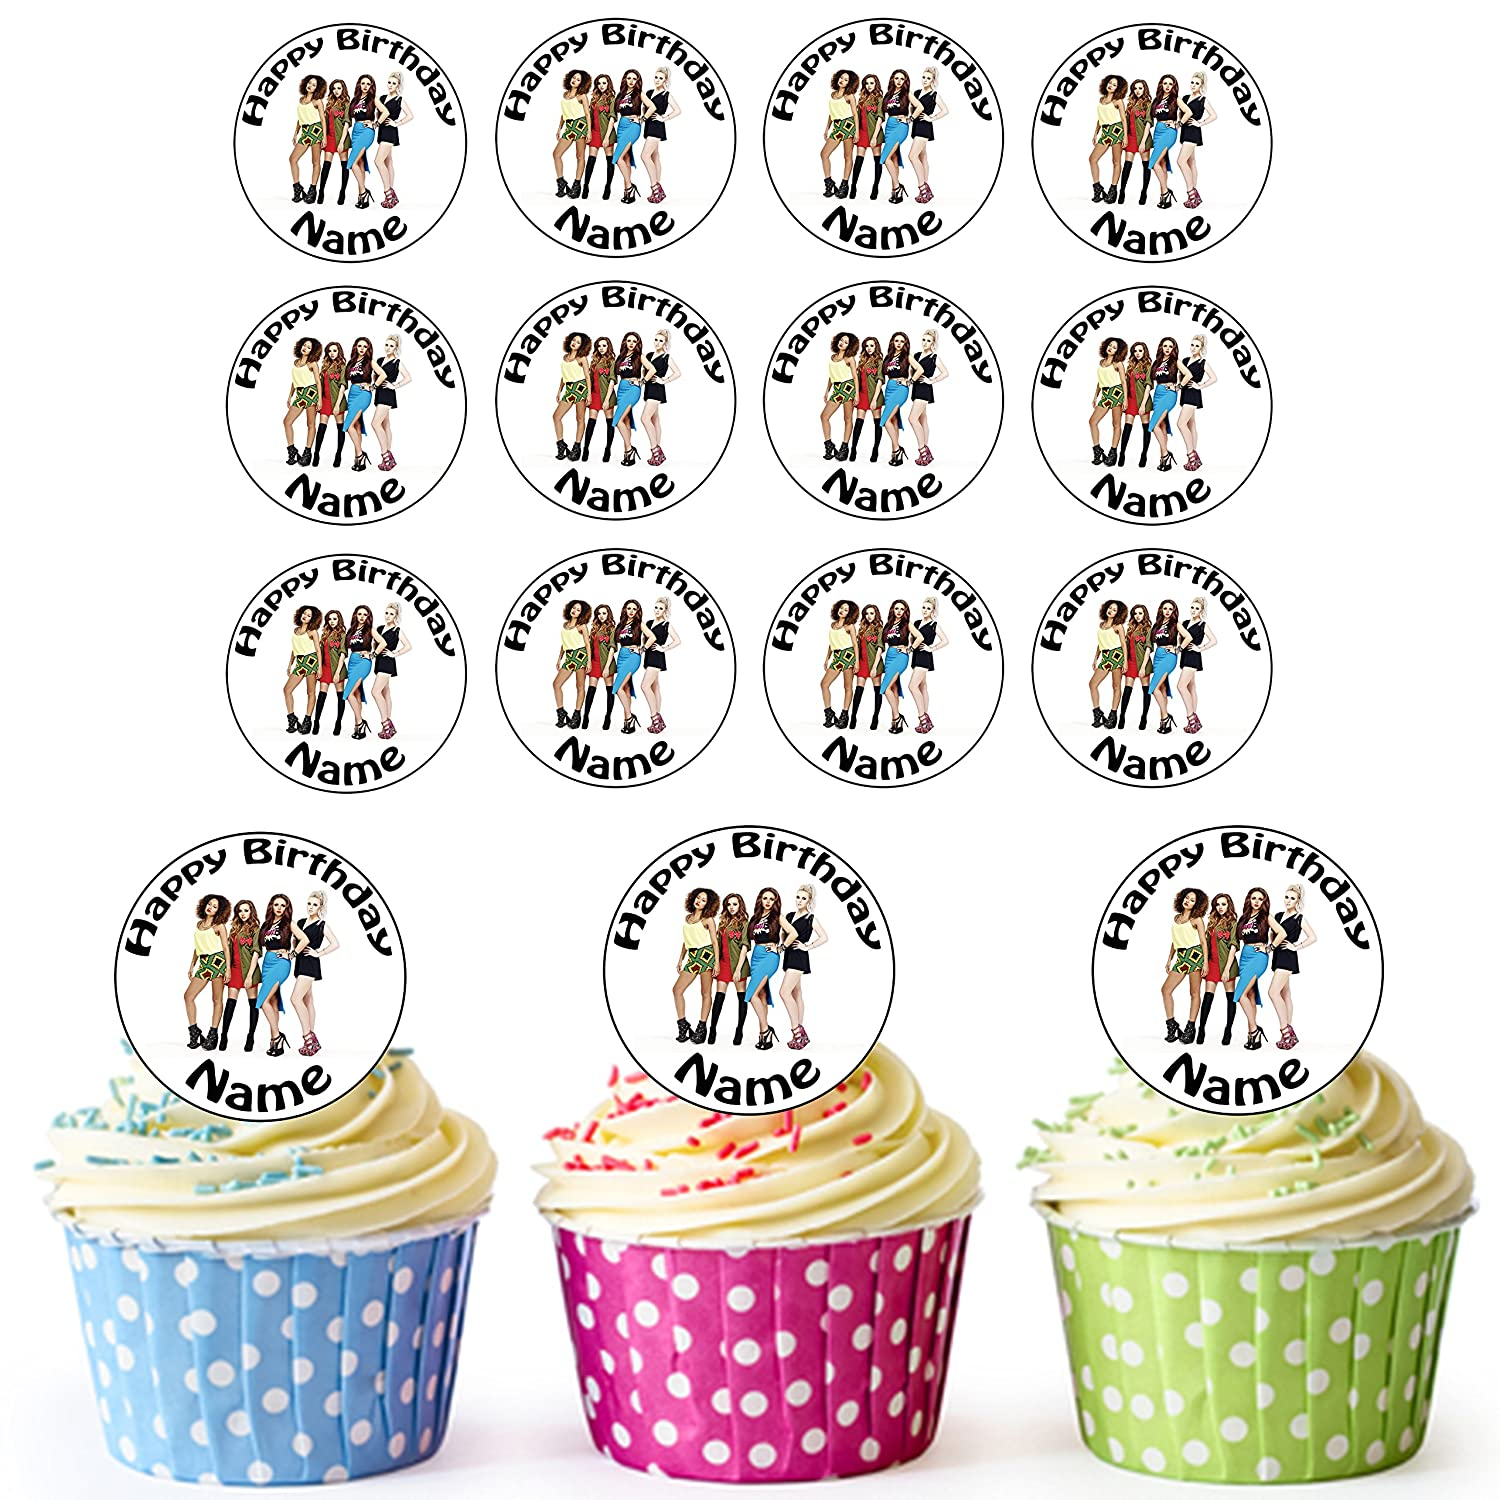 Precut Birthday Rugby Party Pack CUP CAKE TOPPERS DECORATIONS Wigan Colours